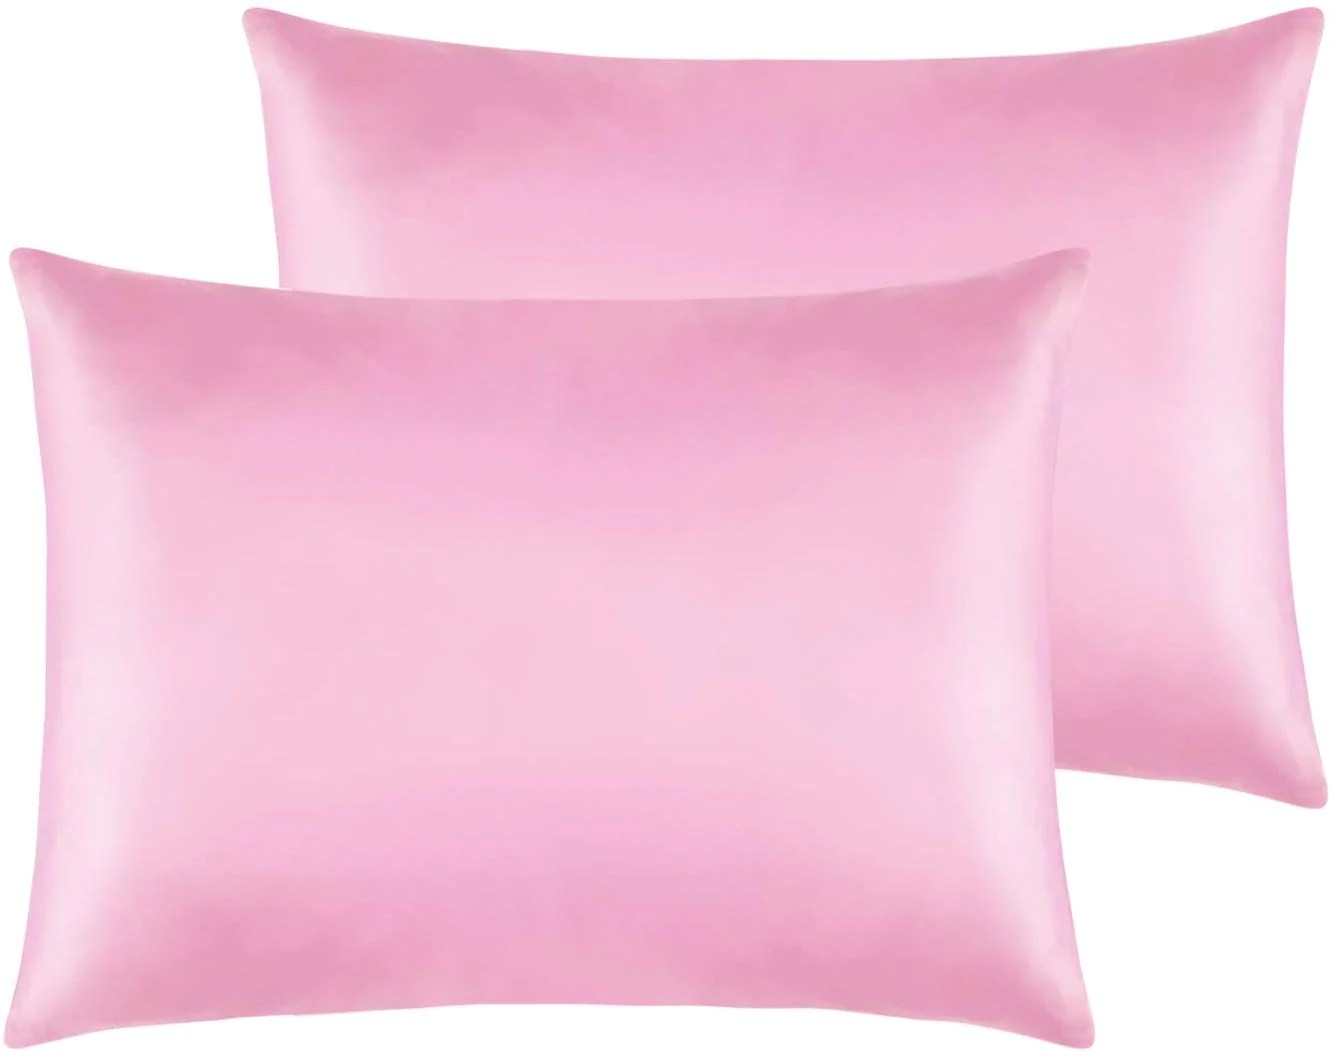 ntbay zippered satin pillow cases for hair and skin luxury hidden zipper pillowcases set of 2